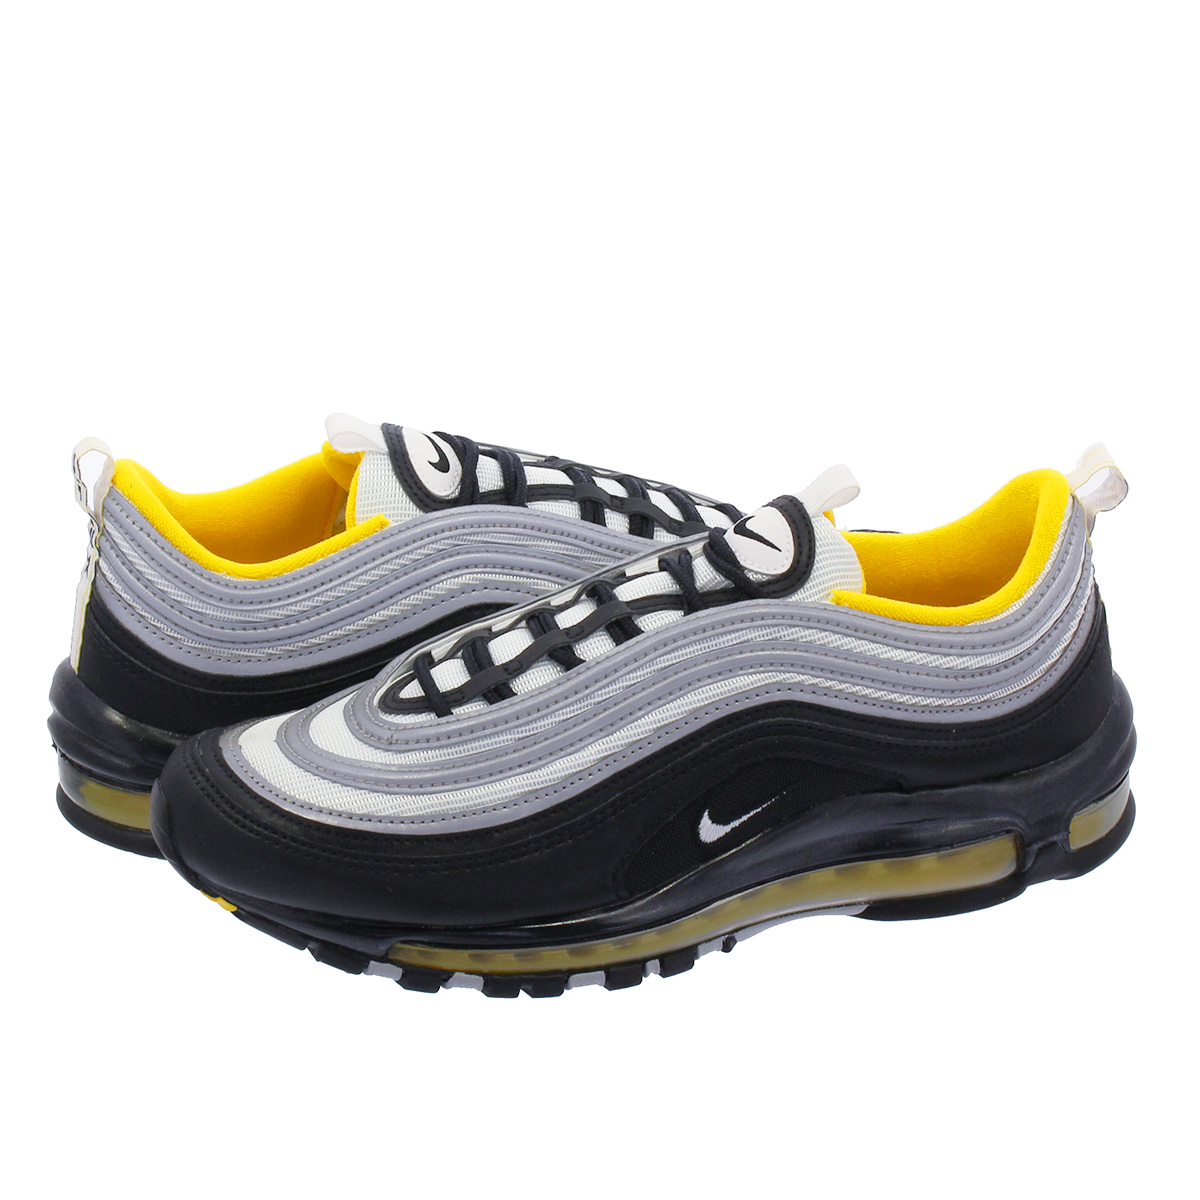 size 40 5fb51 91056 NIKE AIR MAX 97 나이키 에어 막스 97 BLACK WHITE AMARILLO 921826-008